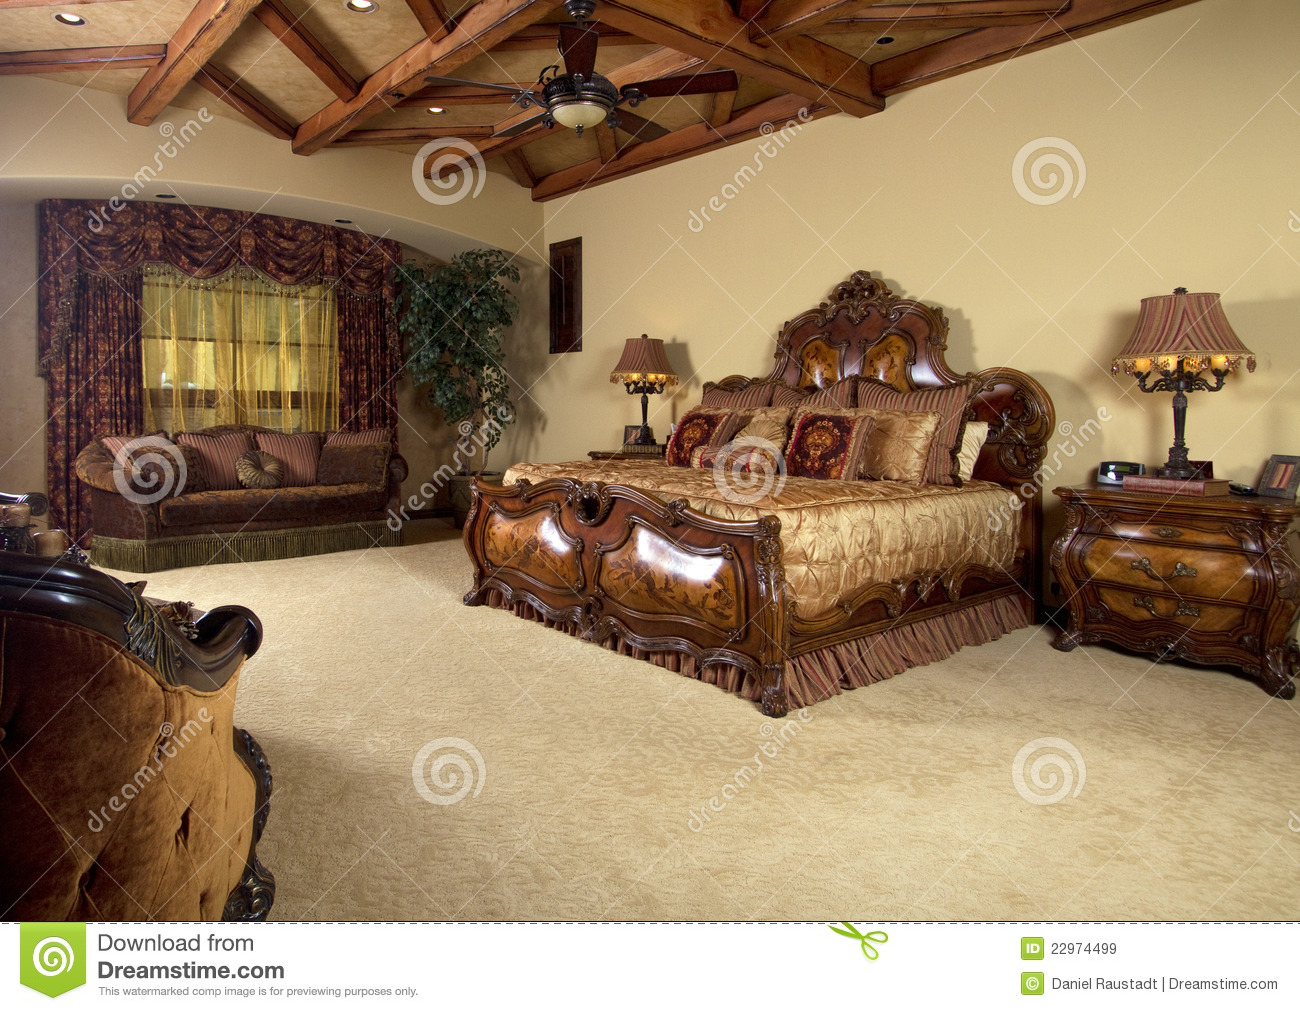 Master bedroom unique bed royalty free stock images for Unique master bedroom designs